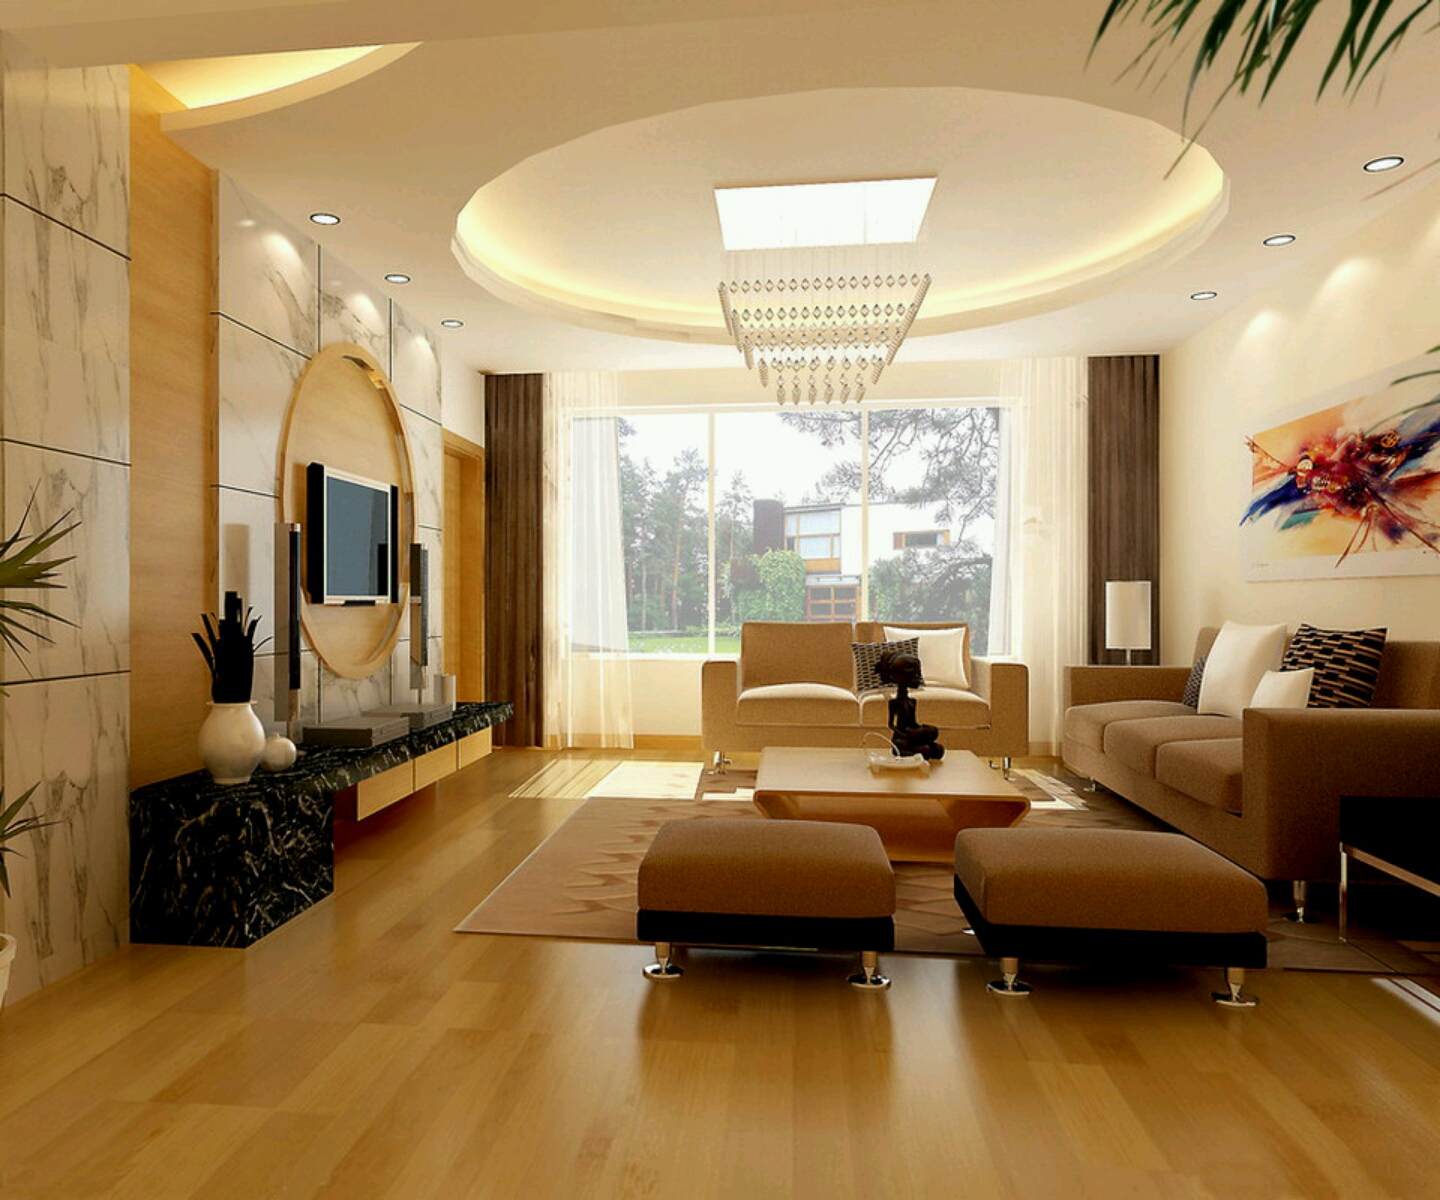 Modern interior decoration living rooms ceiling designs ... on Living Room Style Ideas  id=39441